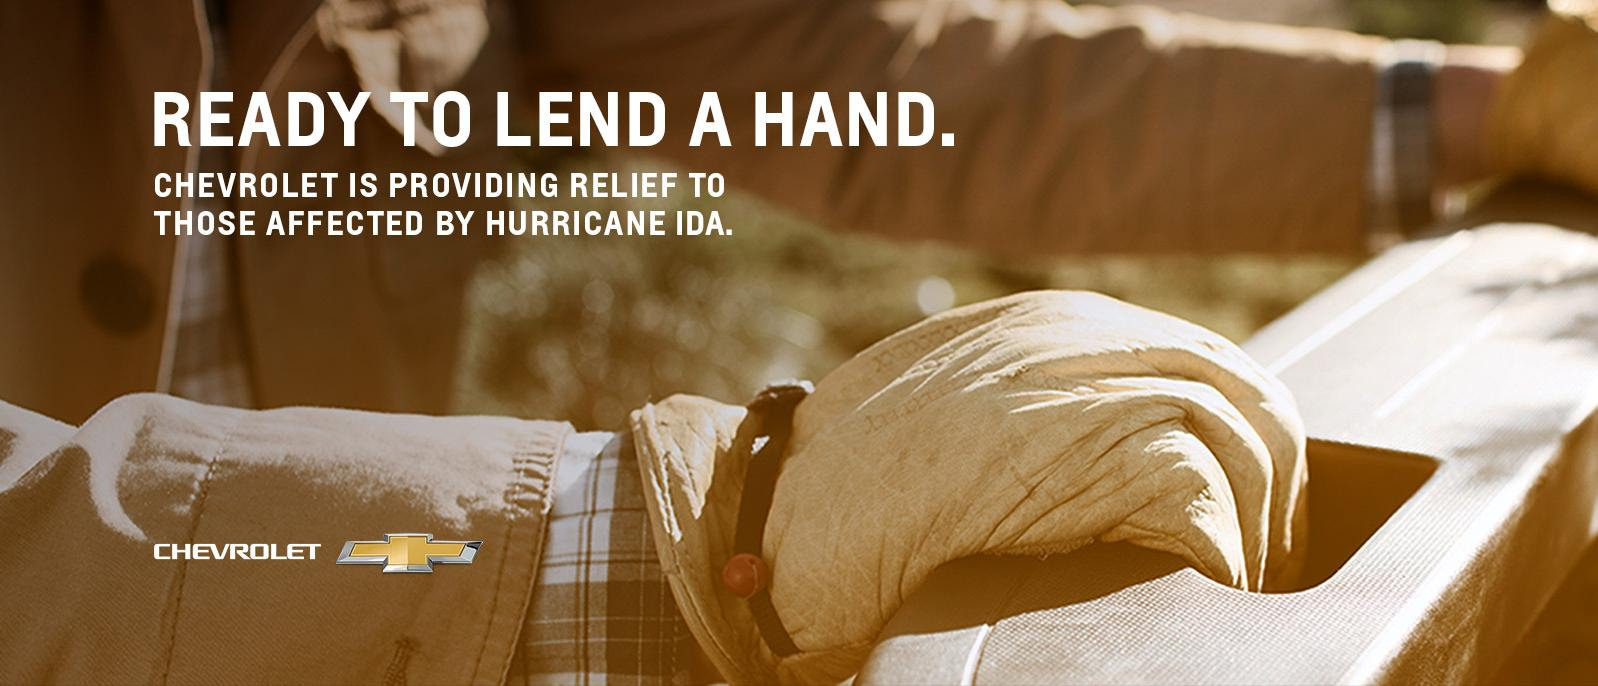 Chevrolet is lending a hand to those affected by Hurricane Ida